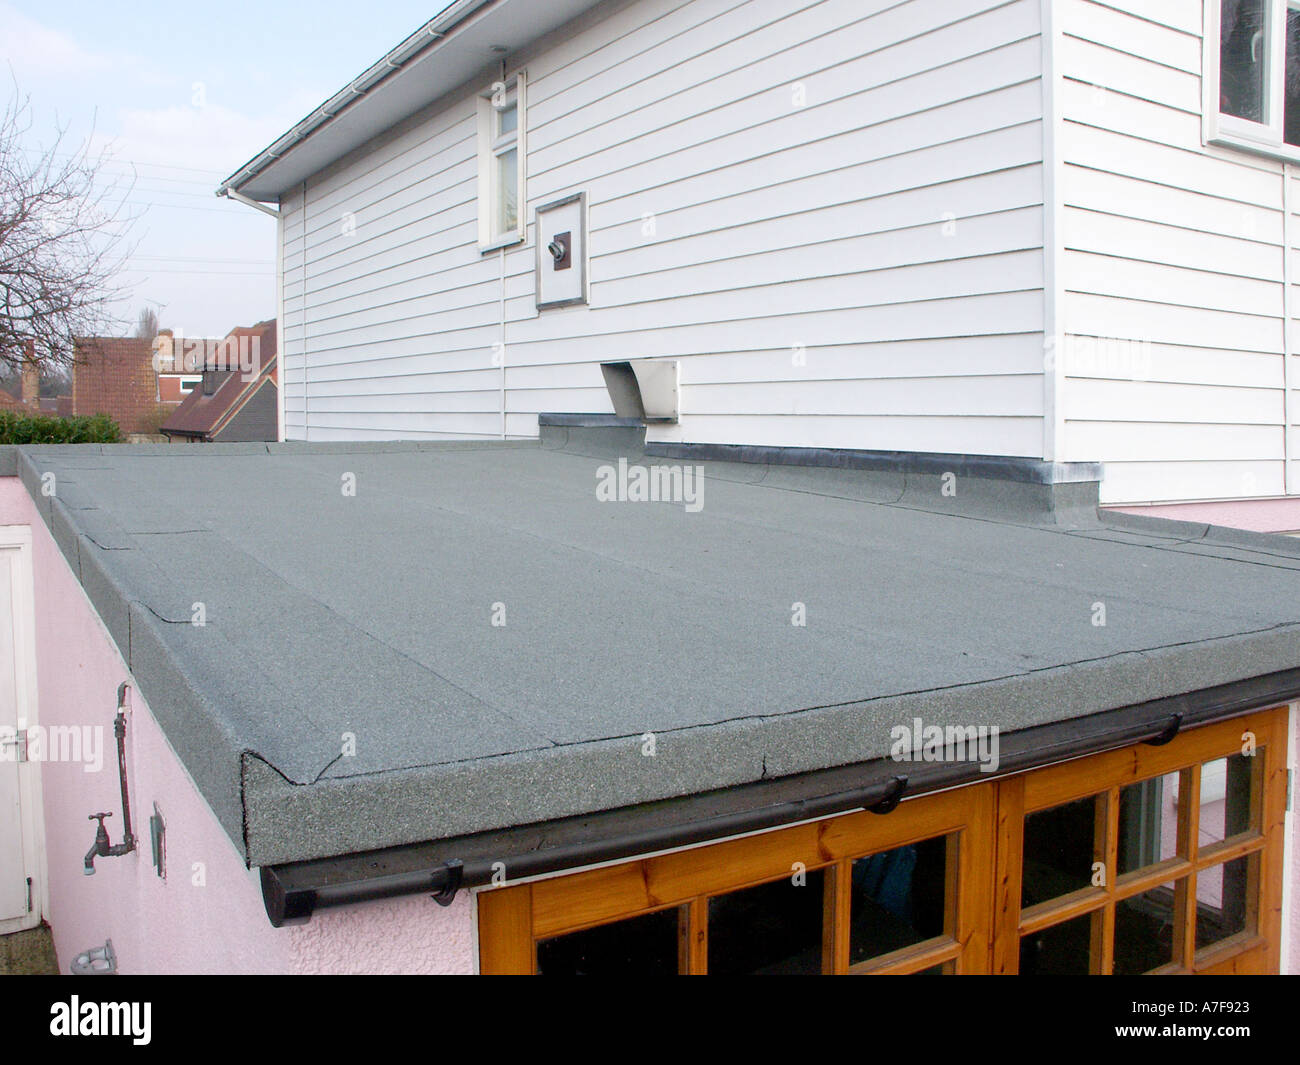 Completed Bituminous Built Up Felt Roofing Replacing Existing Defective  Covering On Attached Car Garage To Domestic